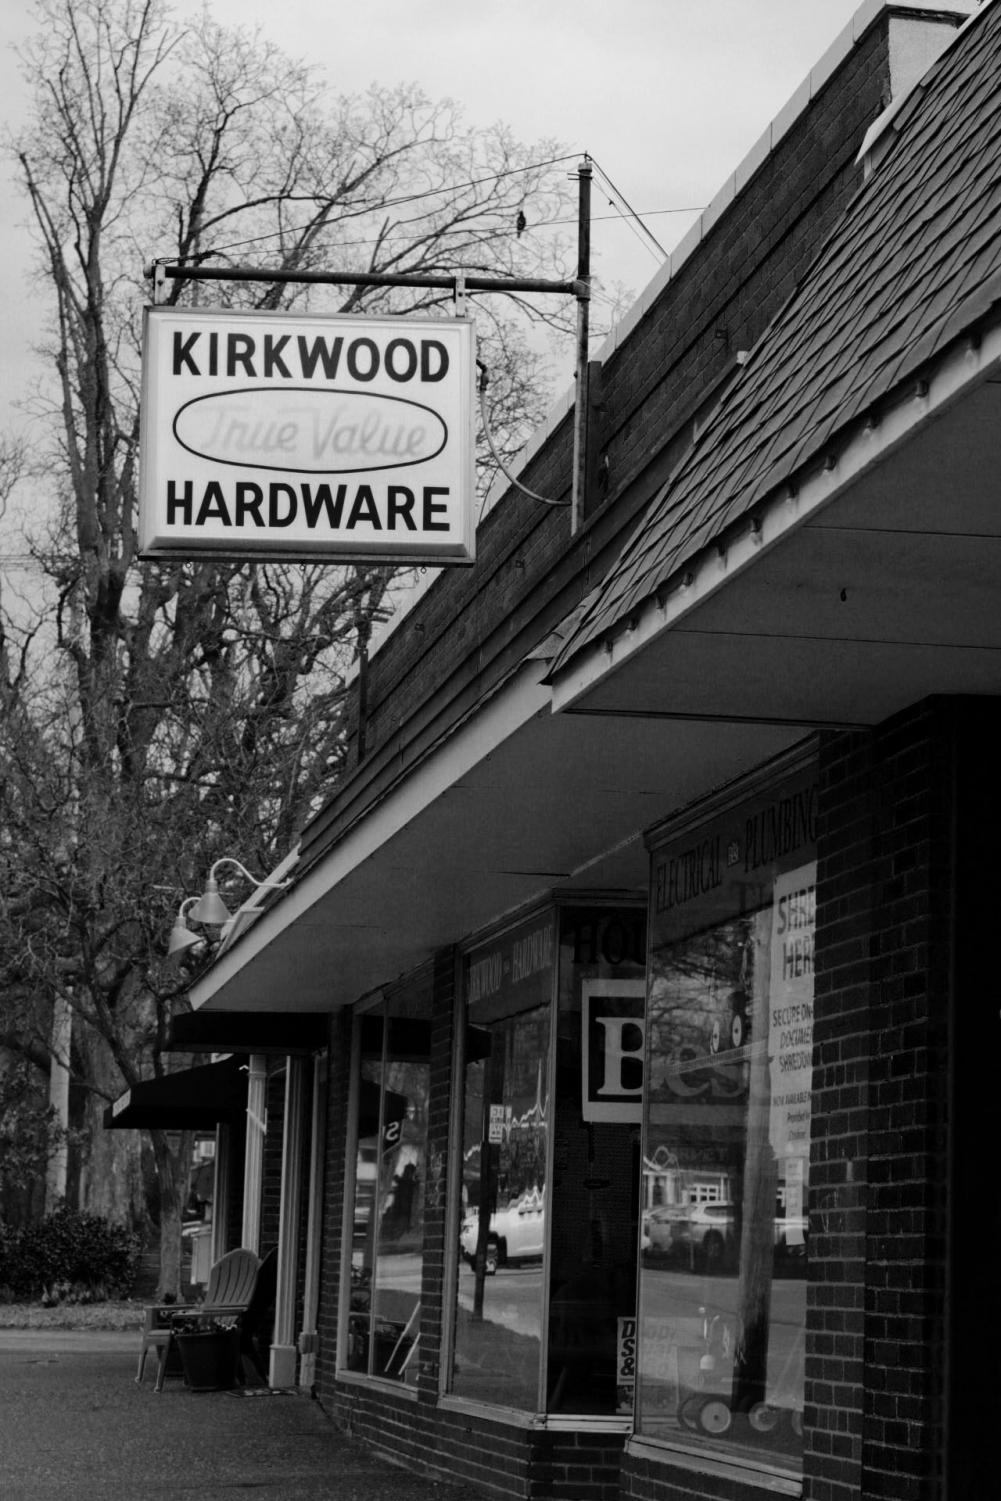 The+Kirkwood+Hardware+Store+is+located+of+Jefferson+Avenue+and+always+open+for+customers+to+stop+in.+